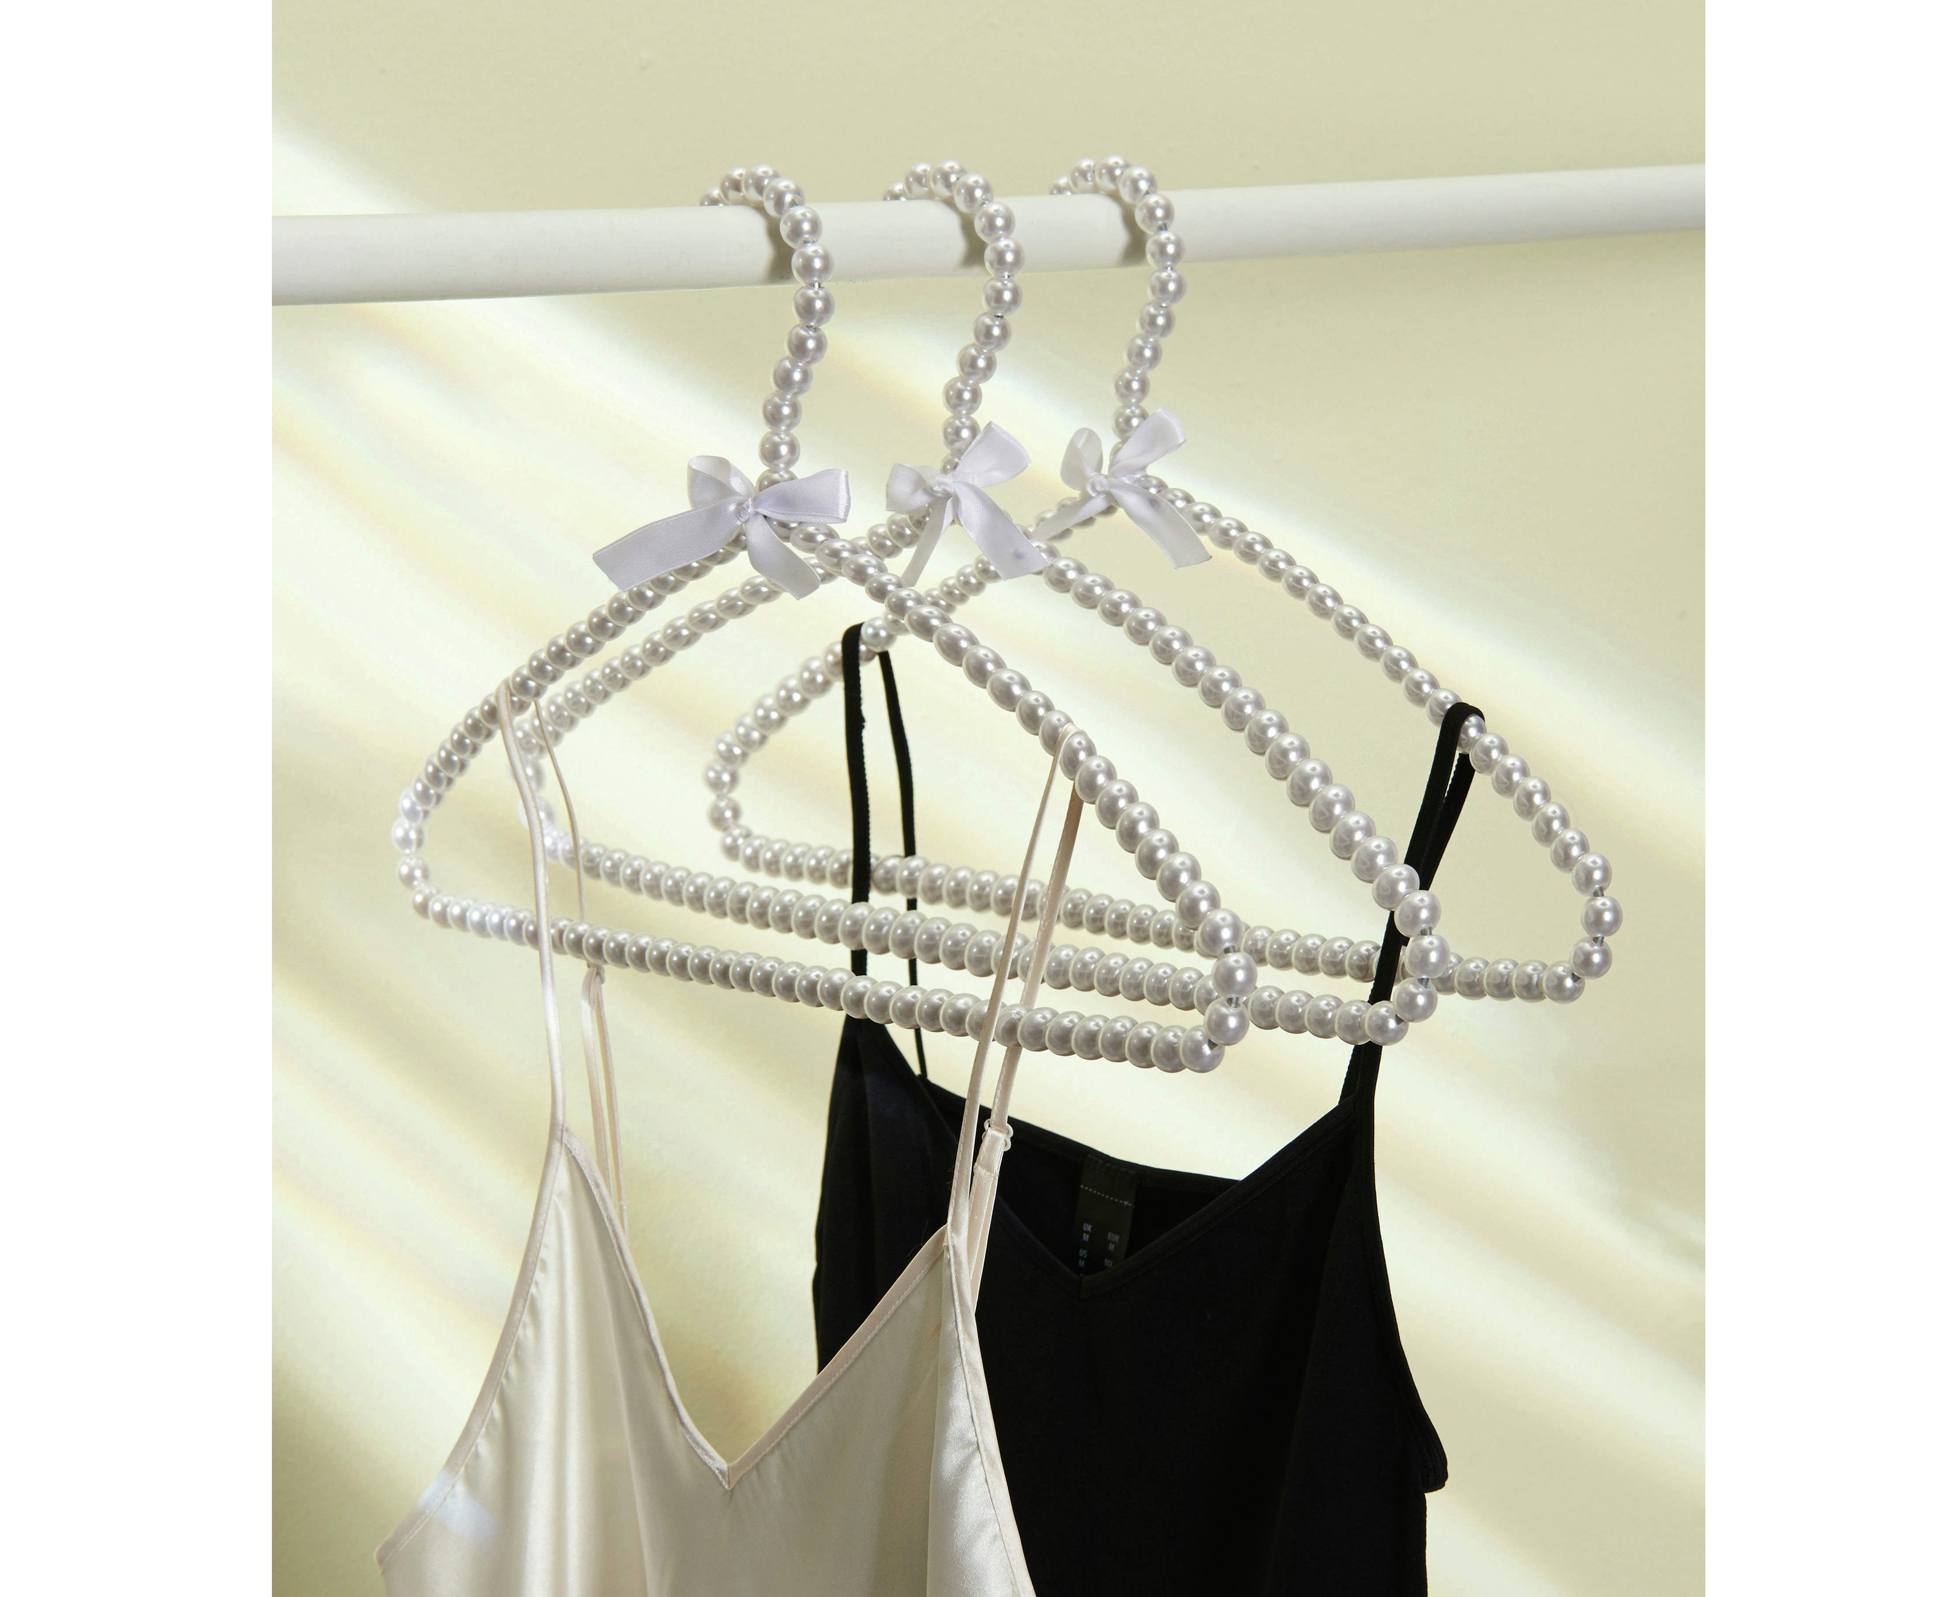 Pearl Arc Hangers, £12.95 for set of three, House of Bath